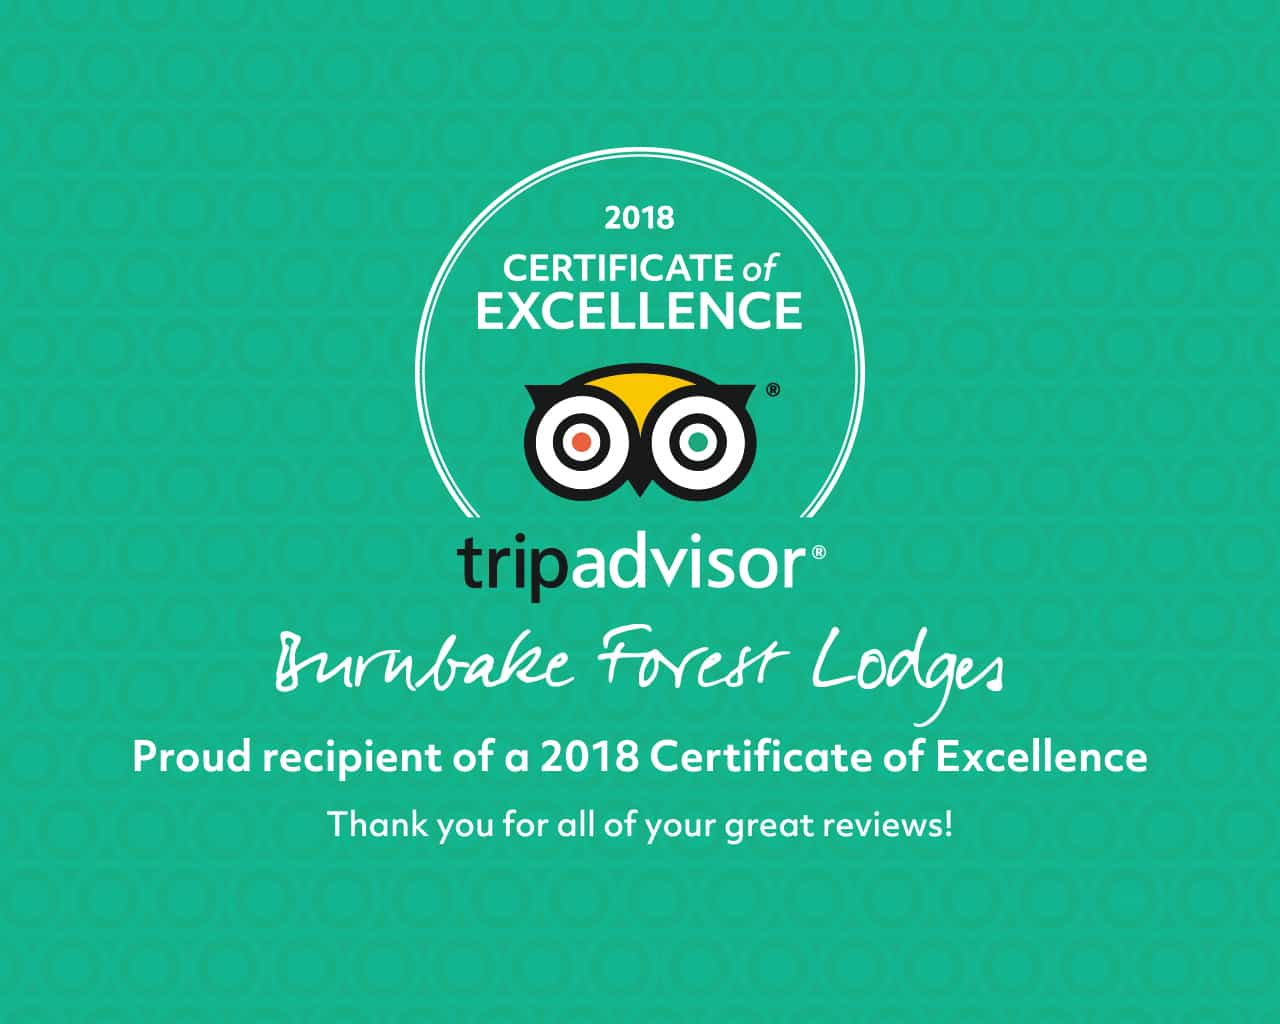 We have earned a TripAdvisor 2018 Certificate of Excellence